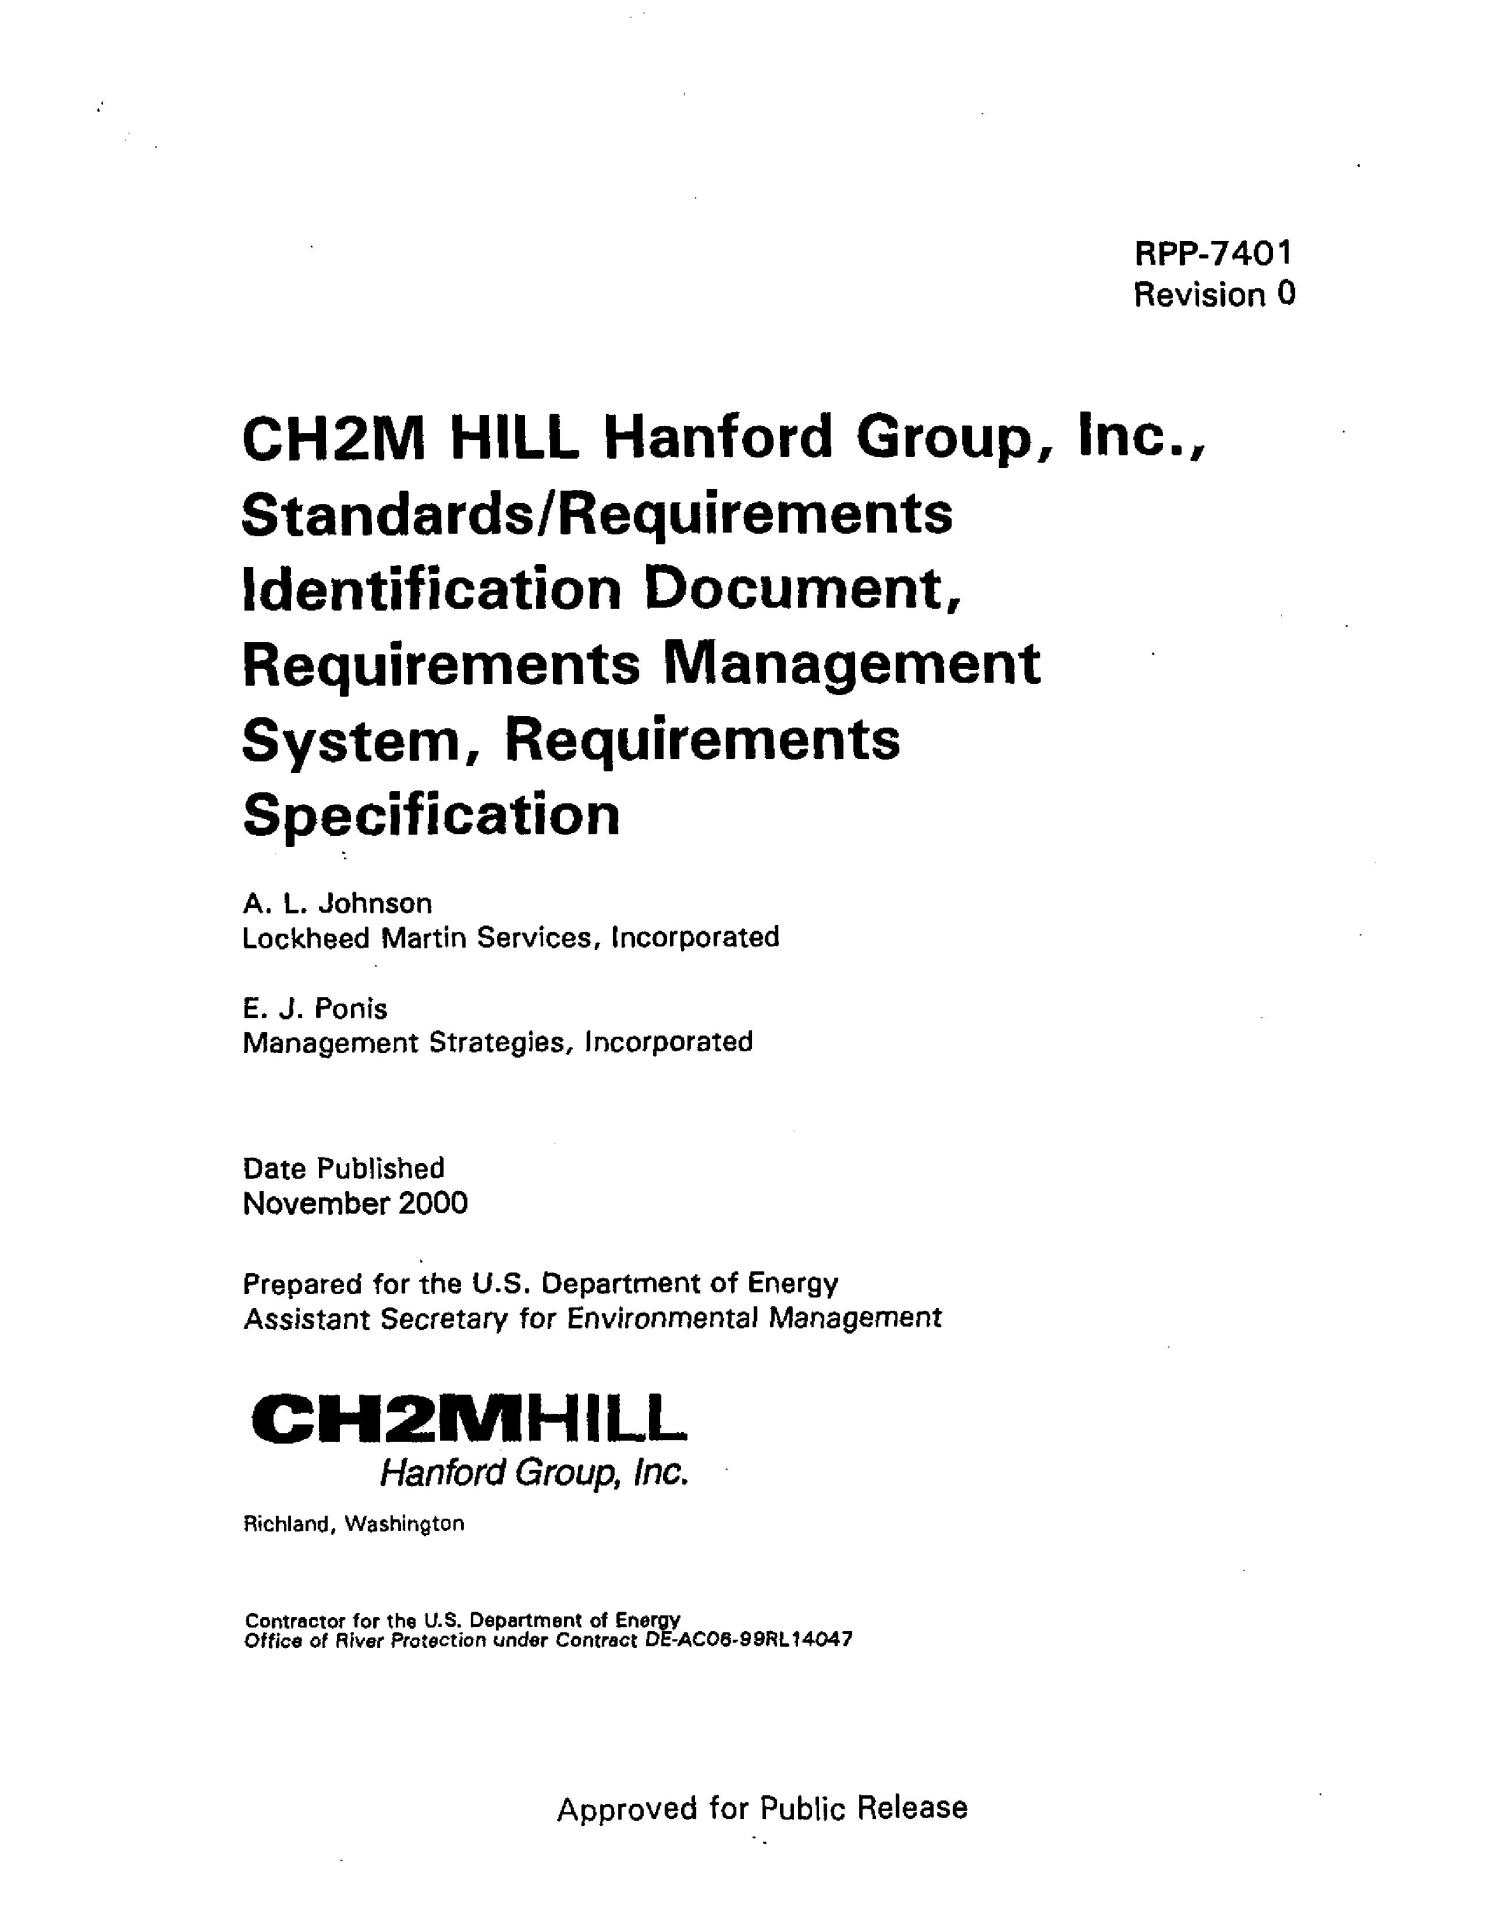 CH2M Hill Hanford Group, Inc. Standards and Requirements Identification Document (SRID) Requirements Management System and Requirements Specification                                                                                                      [Sequence #]: 4 of 18